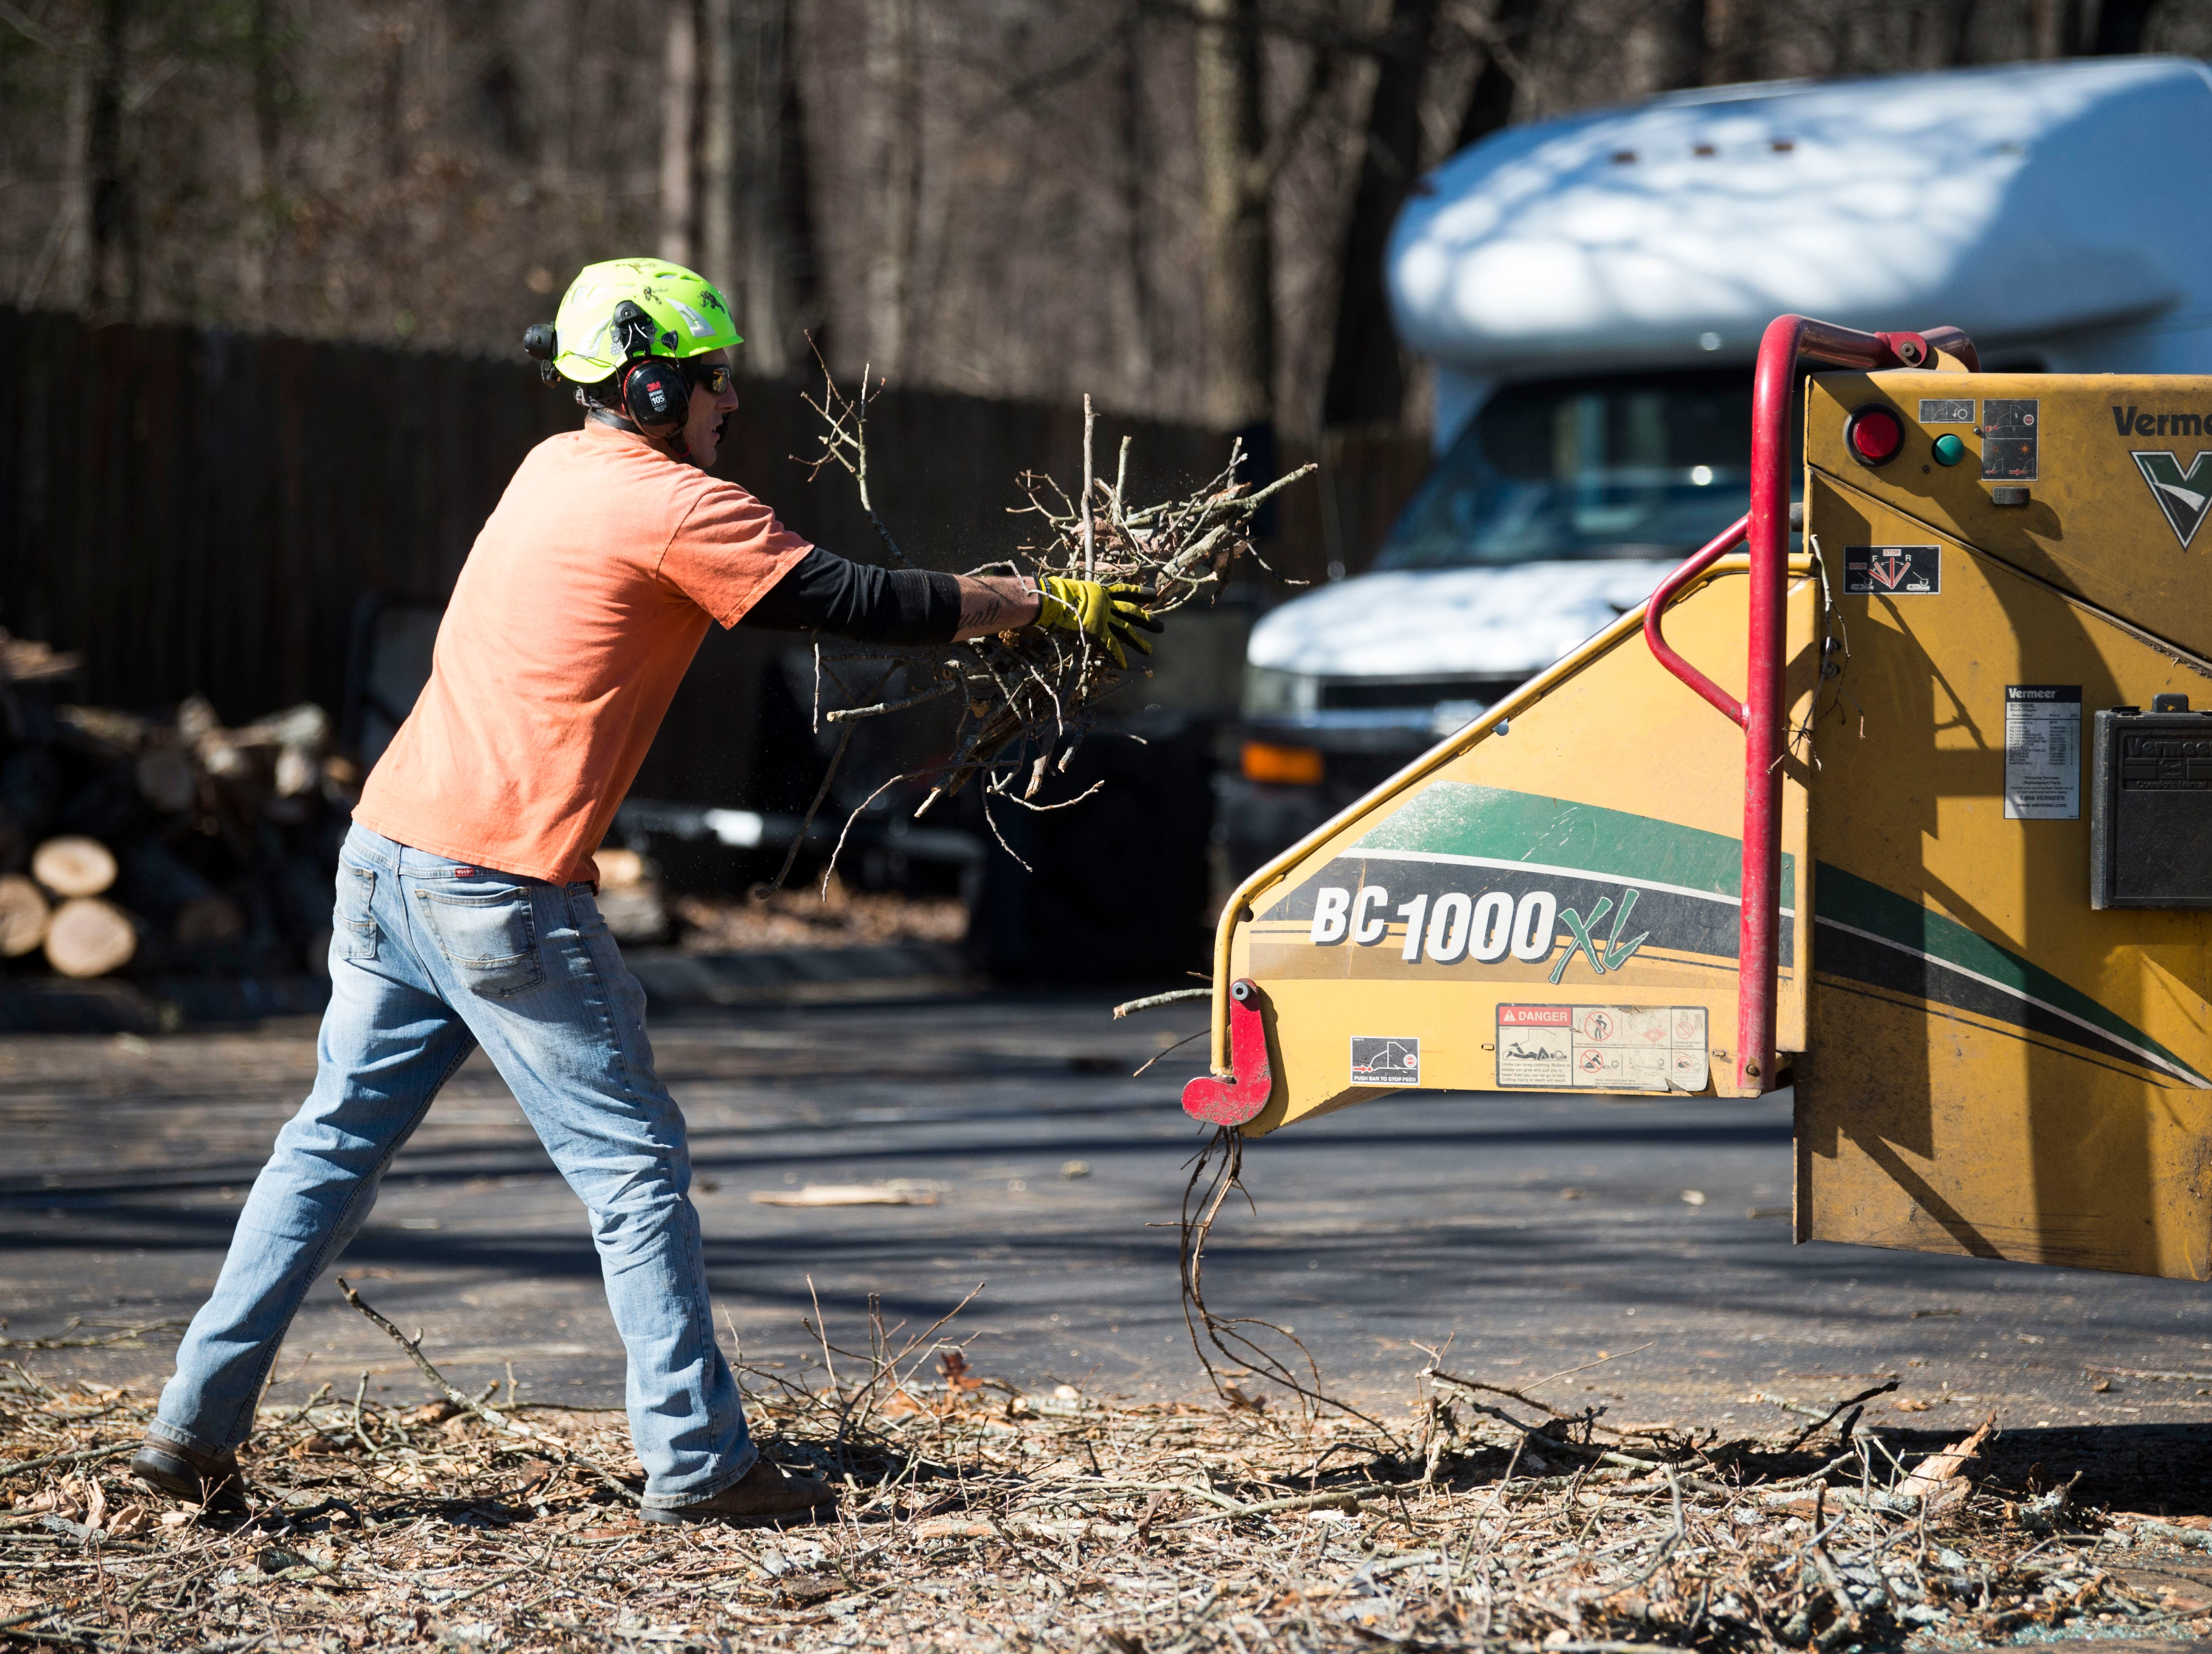 A worker from Big Orange Tree clears debris from a tree which fell during a church service at Fellowship Church Knoxville on Middlebrook Pike Sunday, Feb. 24, 2019. Over twenty cars were affected by the fallen tree.